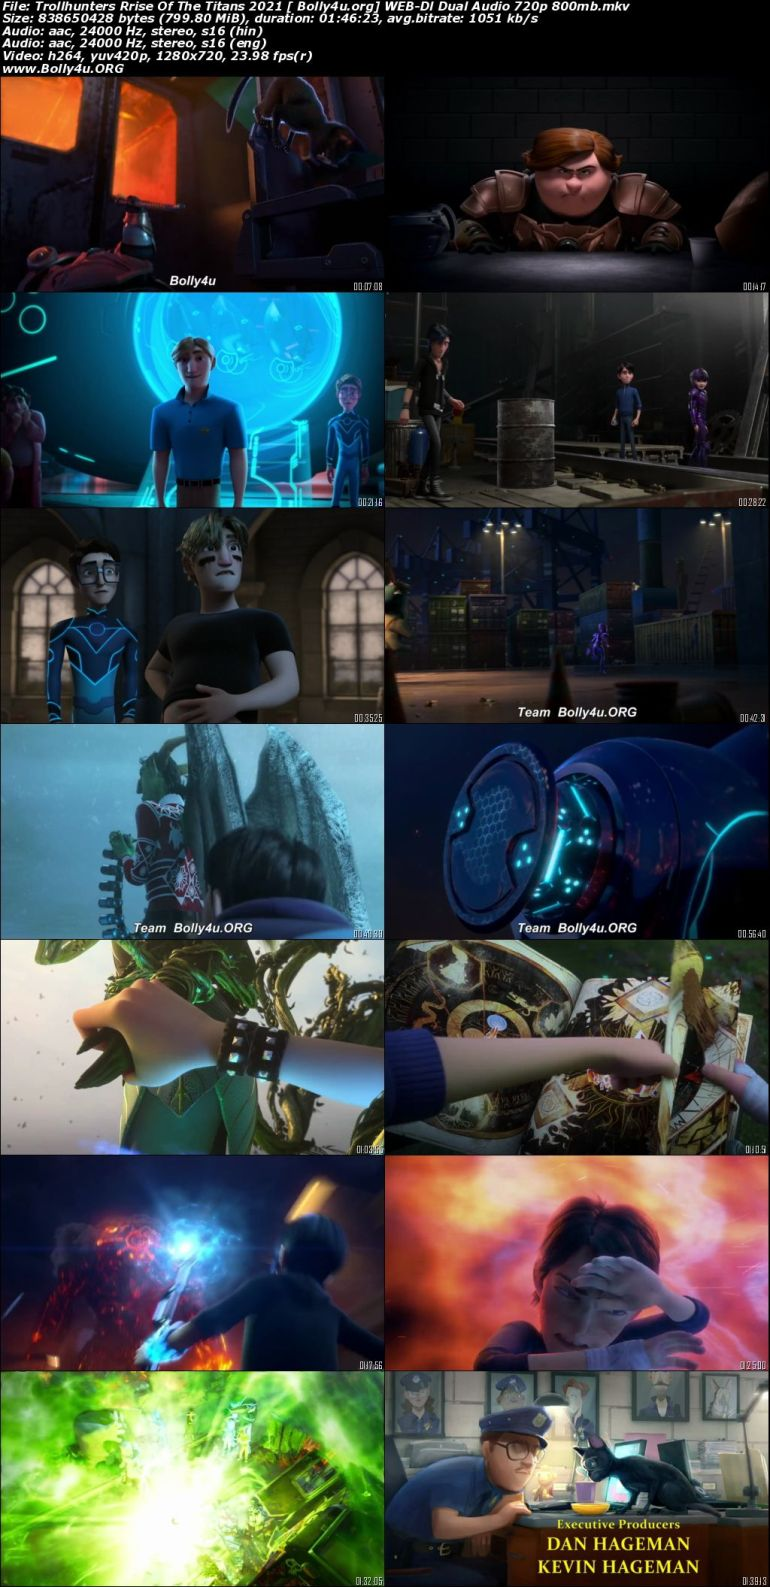 Trollhunters Rrise Of The Titans 2021 WEB-DL 800Mb Hindi Dual Audio ORG 720p Download